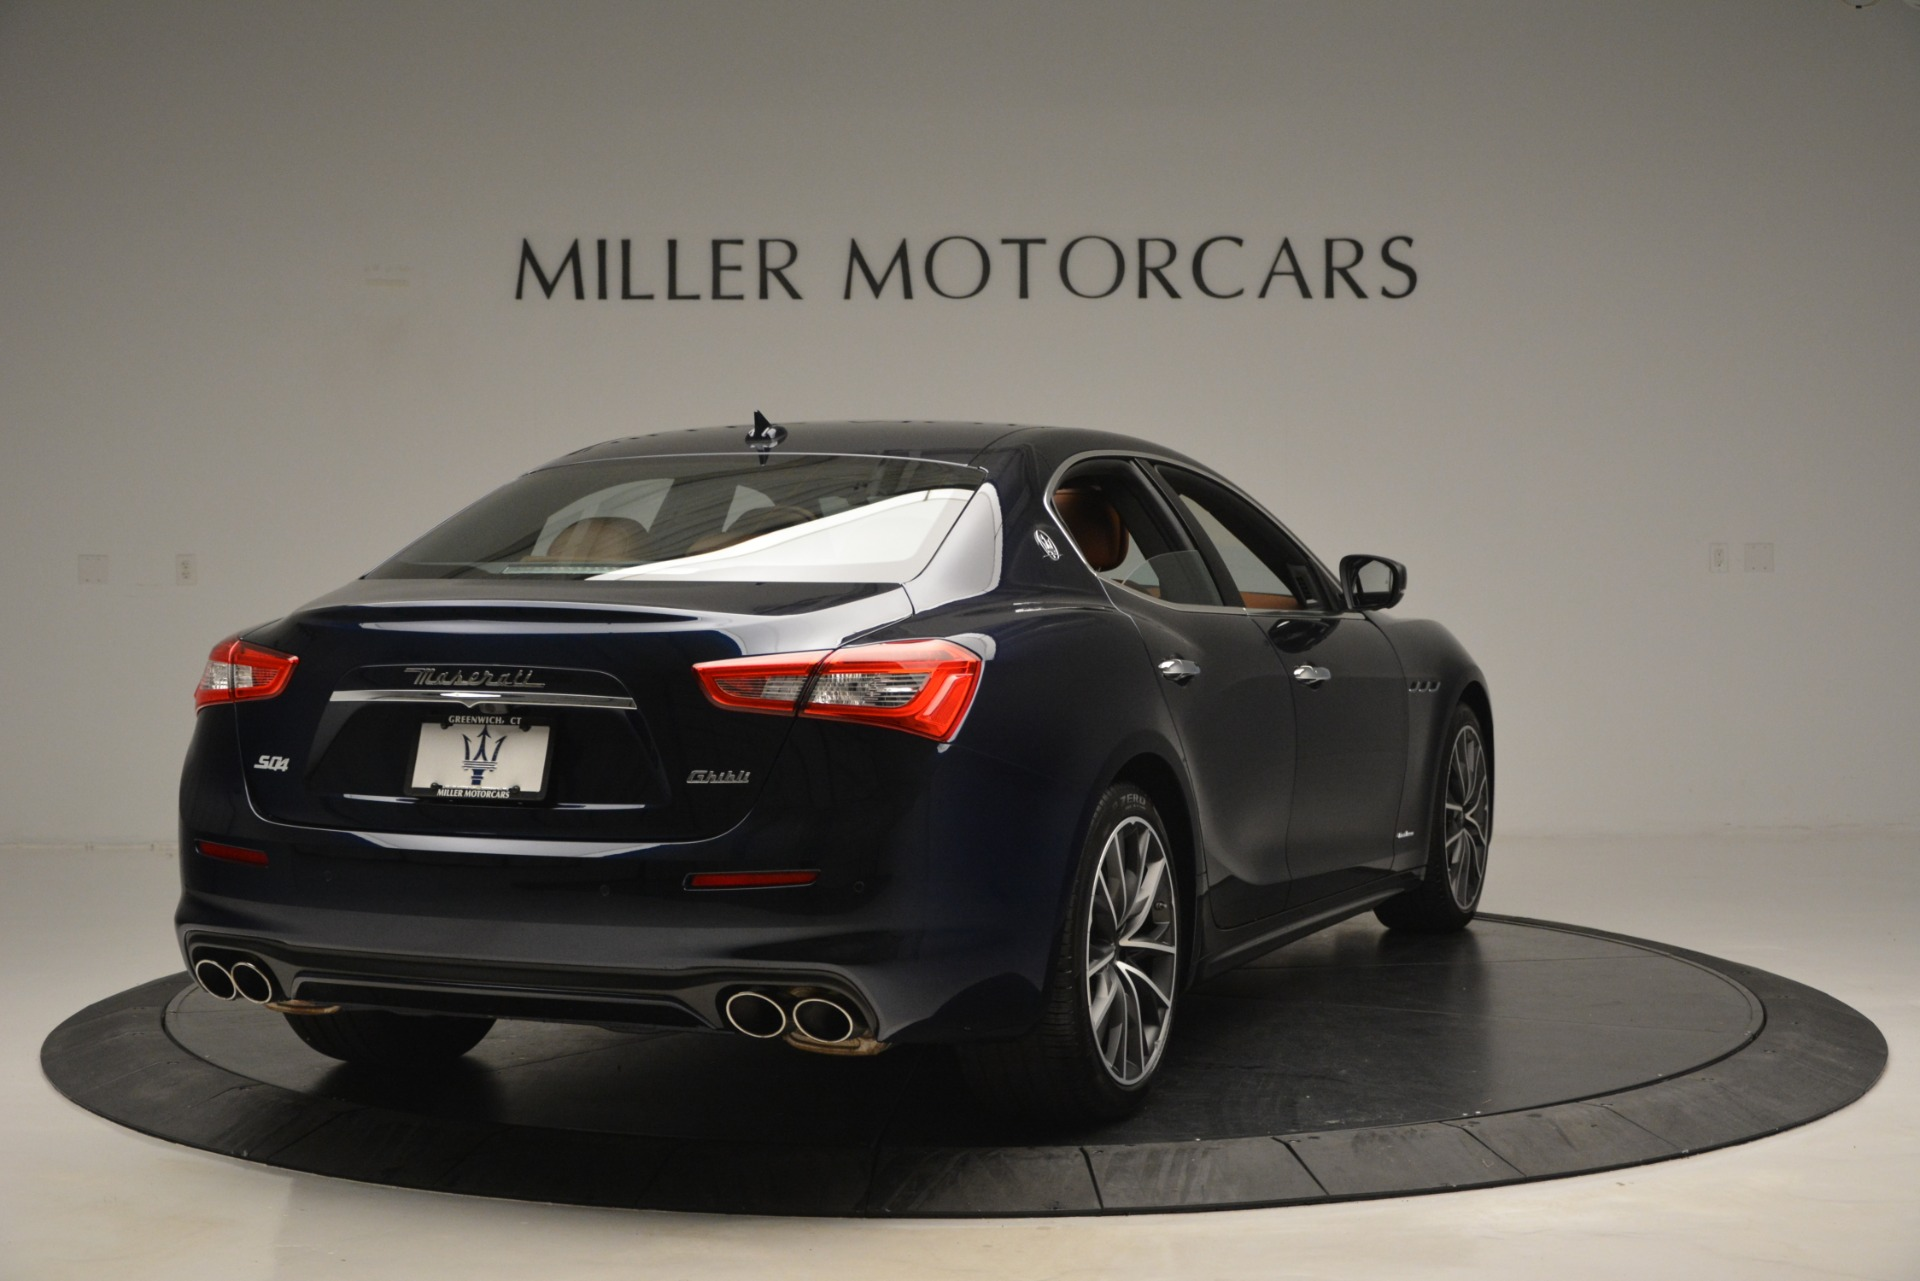 New 2019 Maserati Ghibli S Q4 GranSport For Sale In Westport, CT 2948_p10